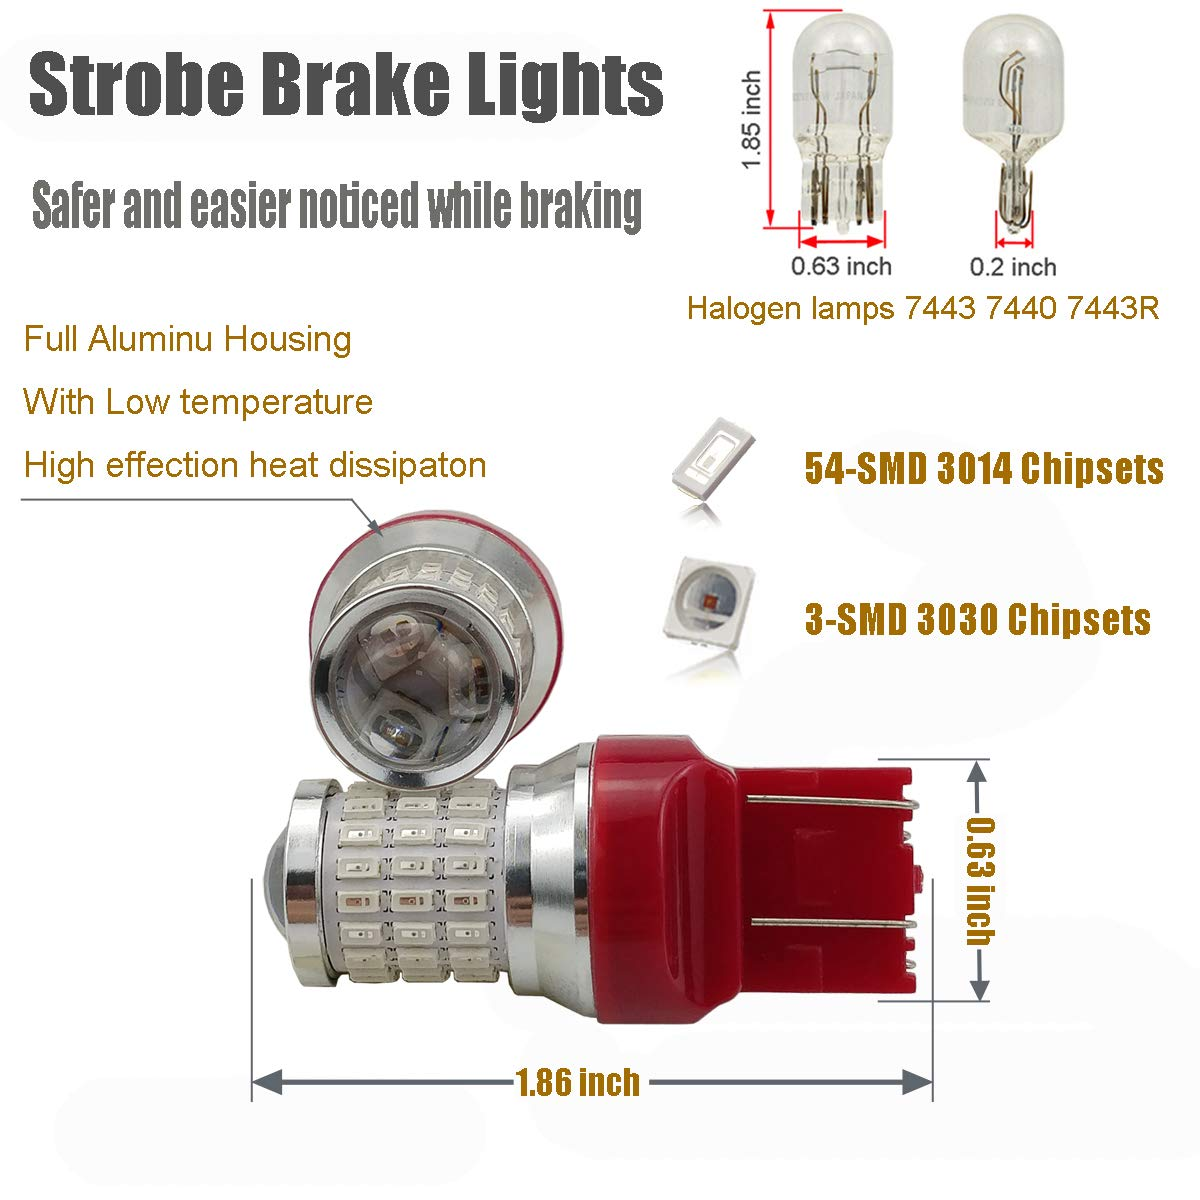 Brilliant Red iBrightstar Newest 9-30V Flashing Strobe Blinking Brake Lights 912 921 W16W T15 906 LED Bulbs with Projector replacement for Tail 3rd Brake Stop Lights